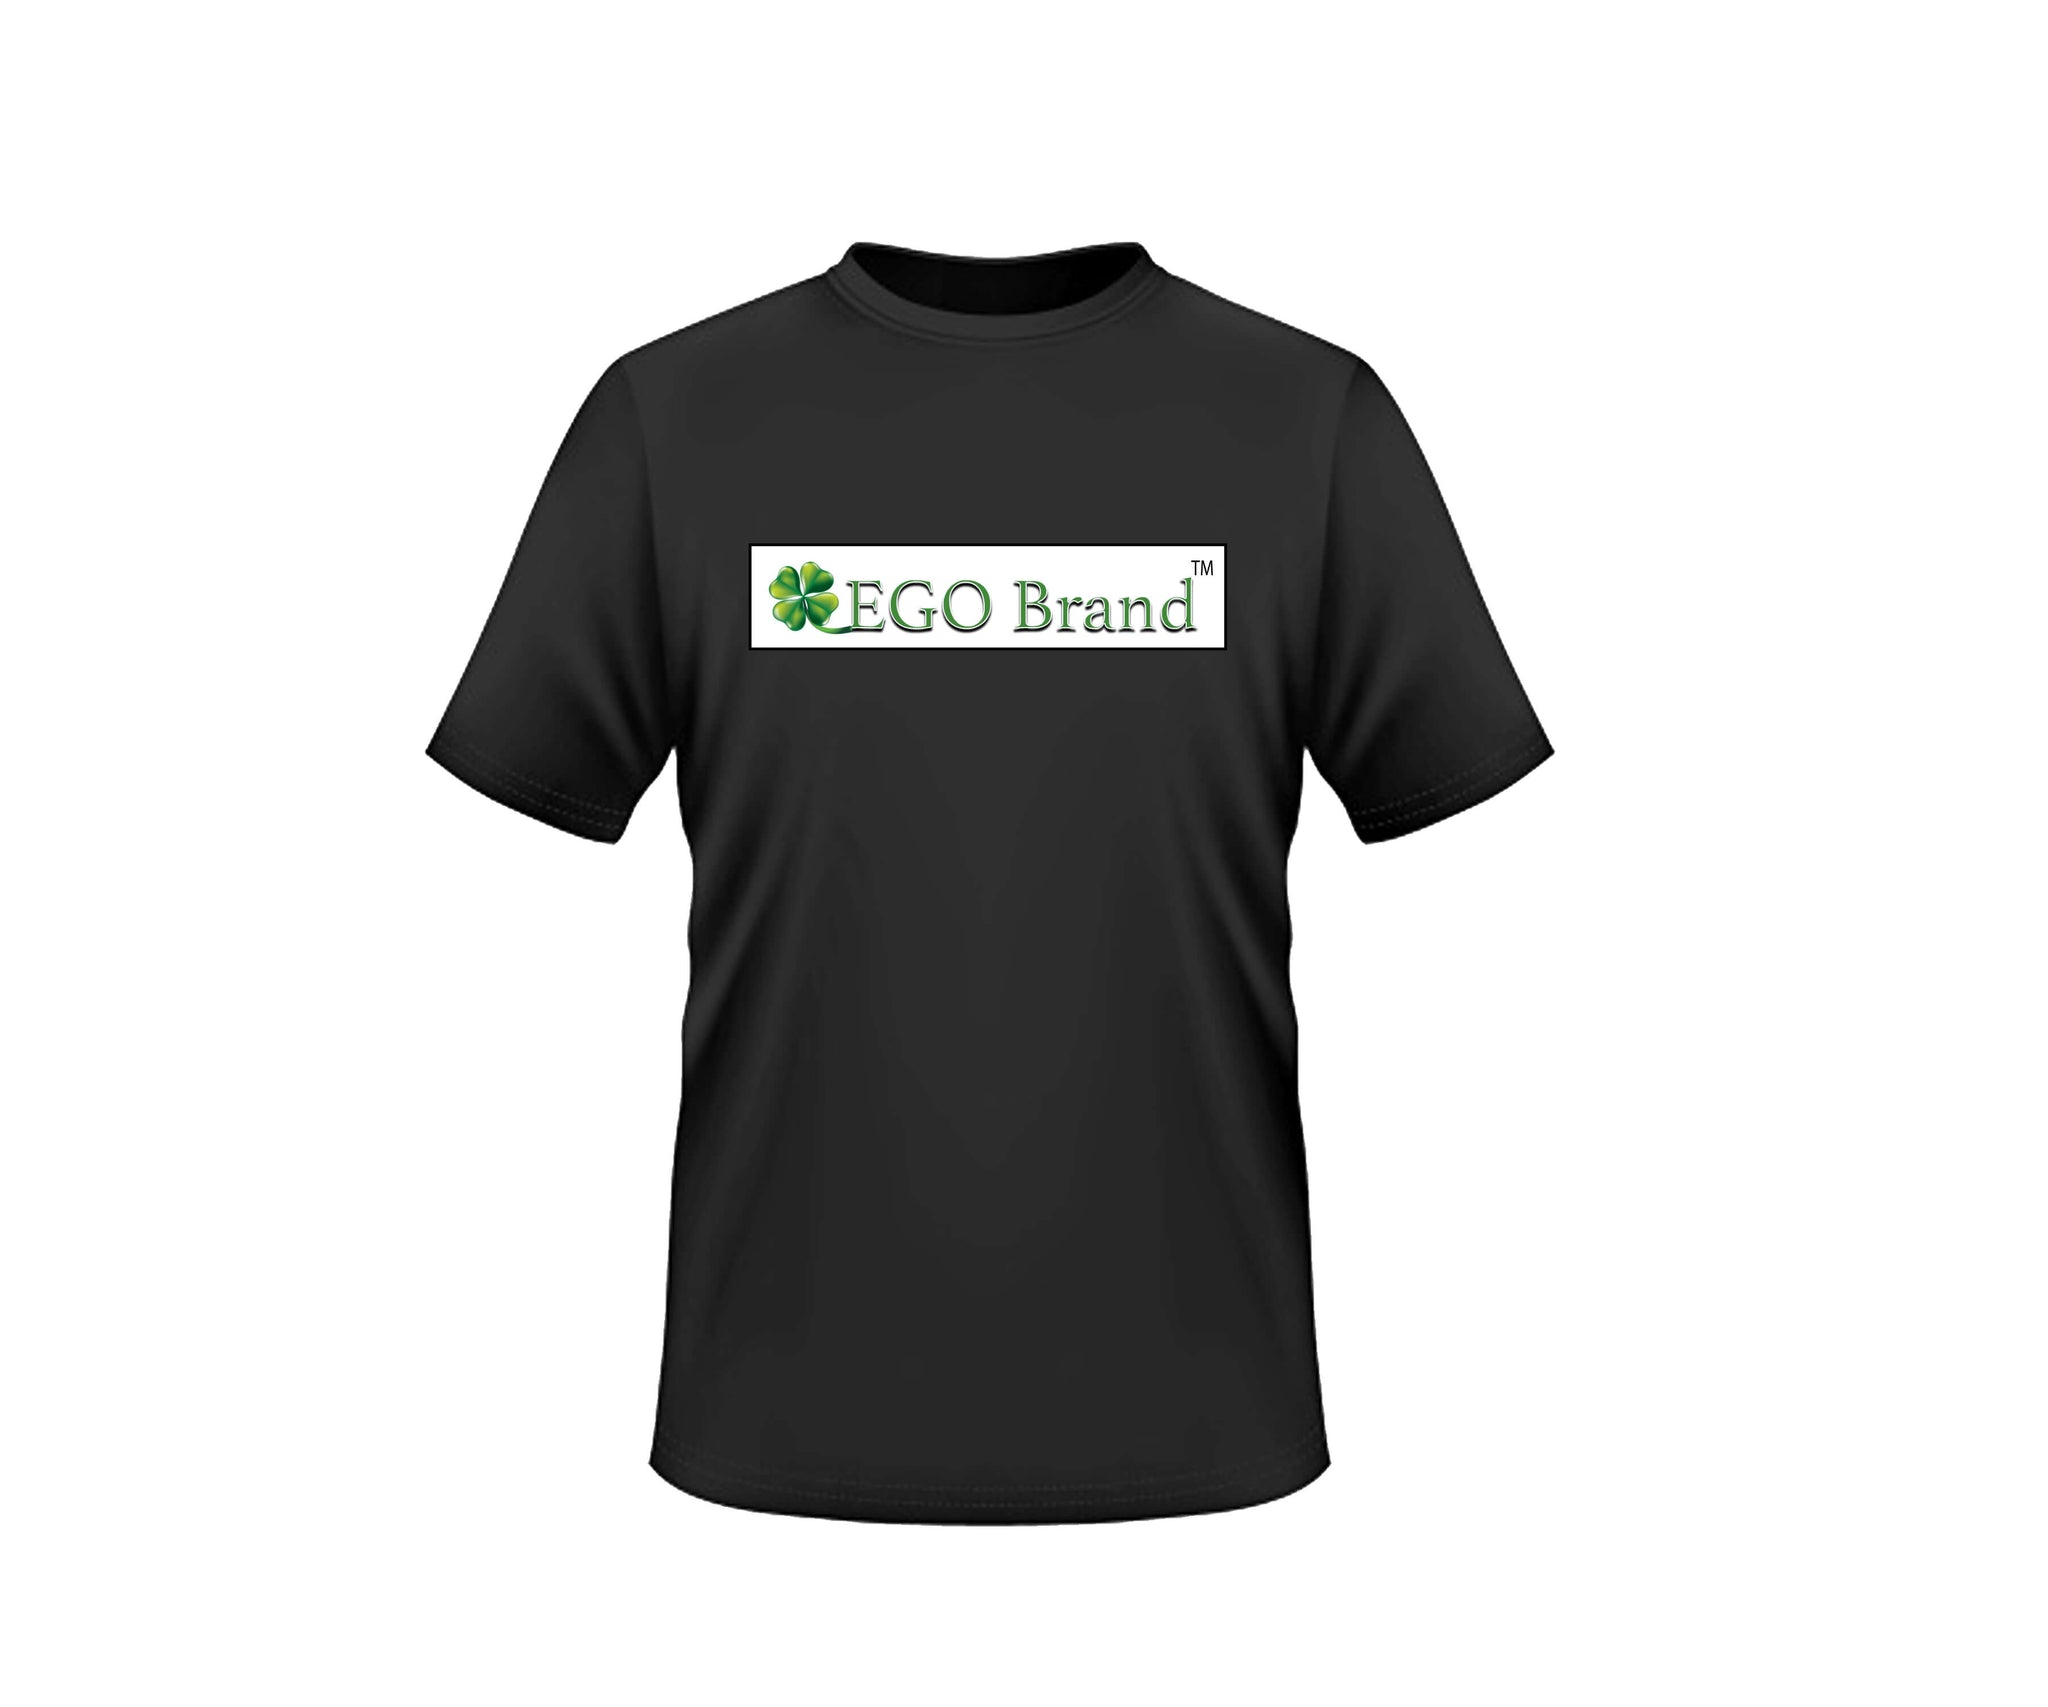 EGO St. Patrick's Day T-Shirt Design